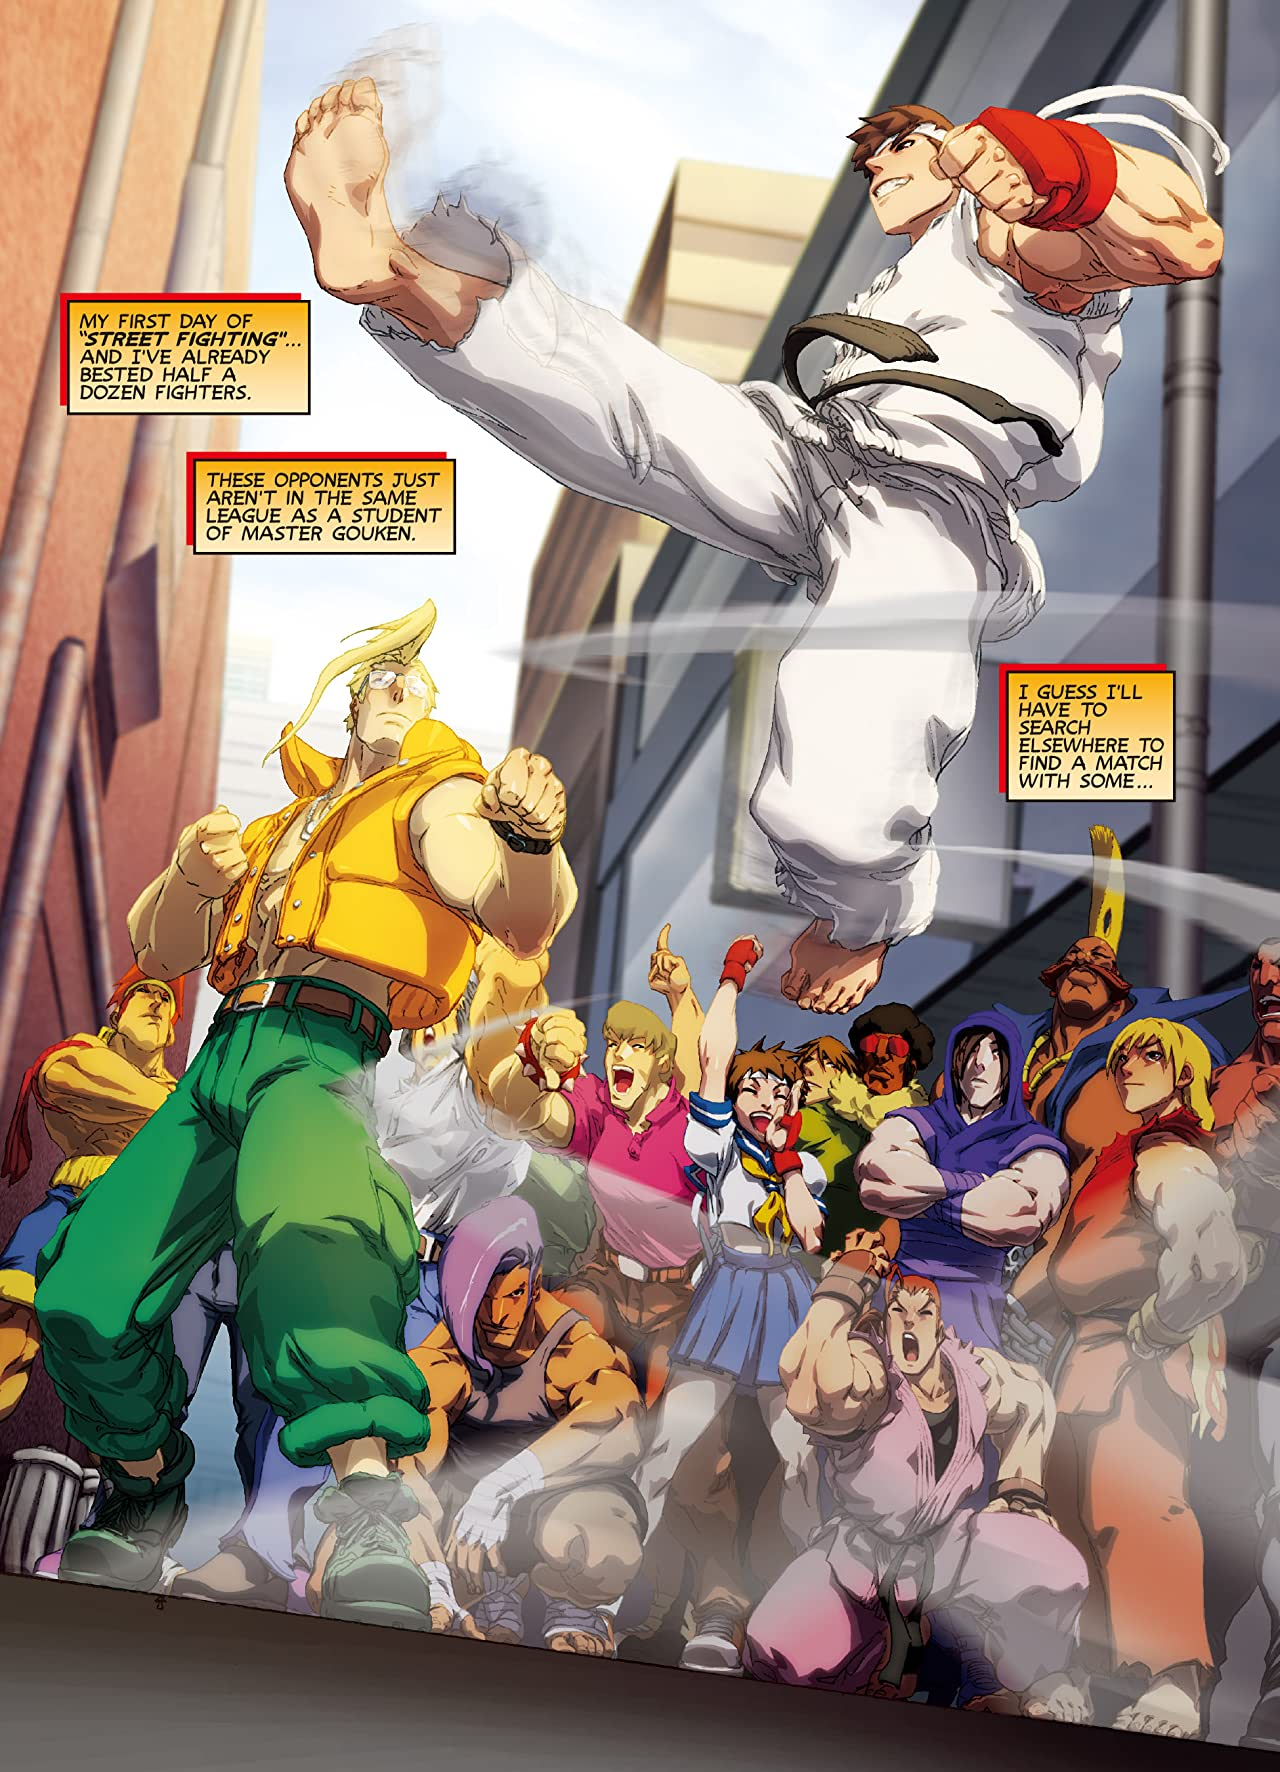 FCBD 2015 Street Fighter: Super Combo Special